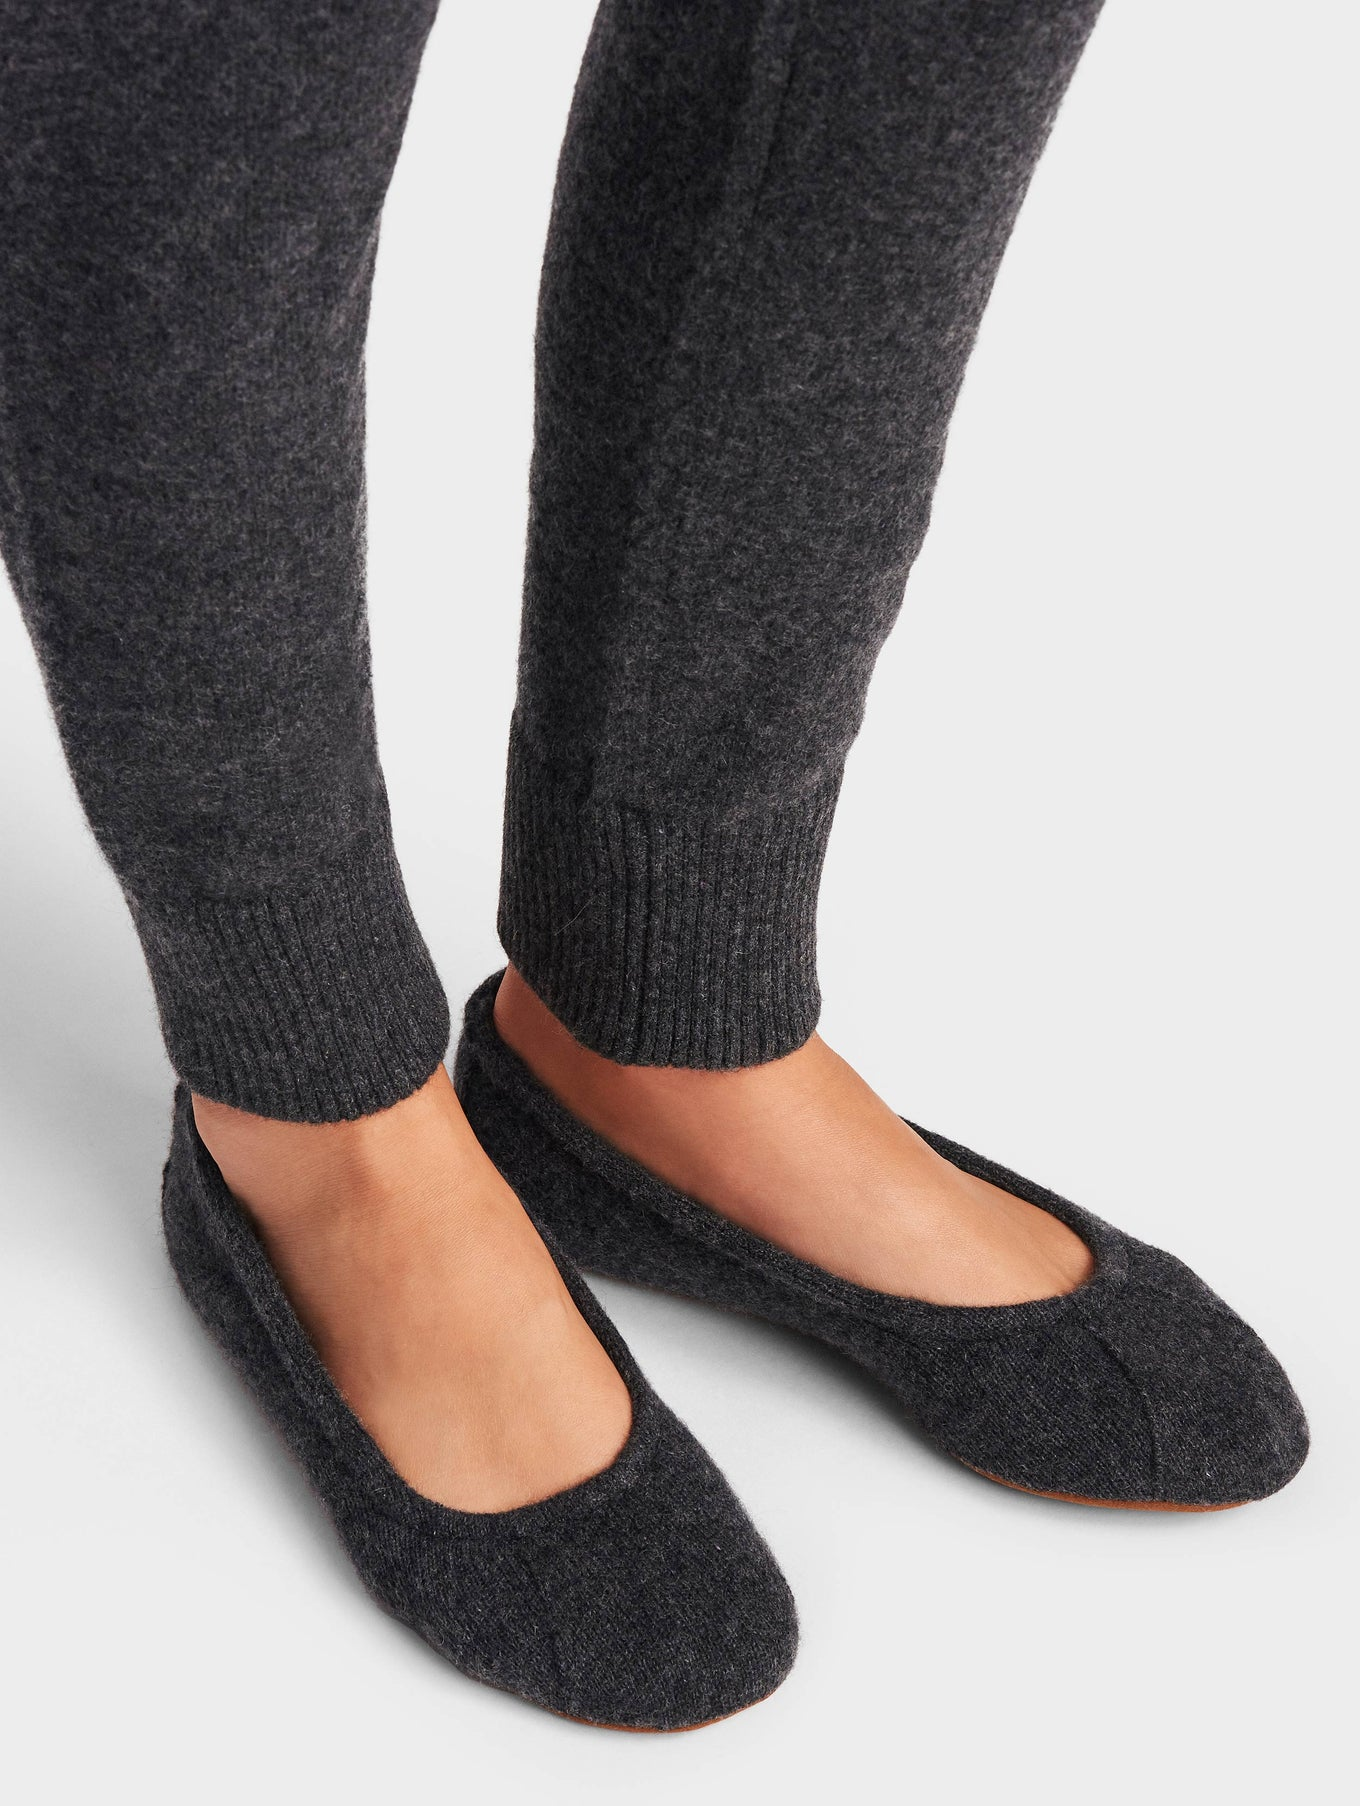 Cashmere Ballet Slipper - Charcoal Heather - Image 1